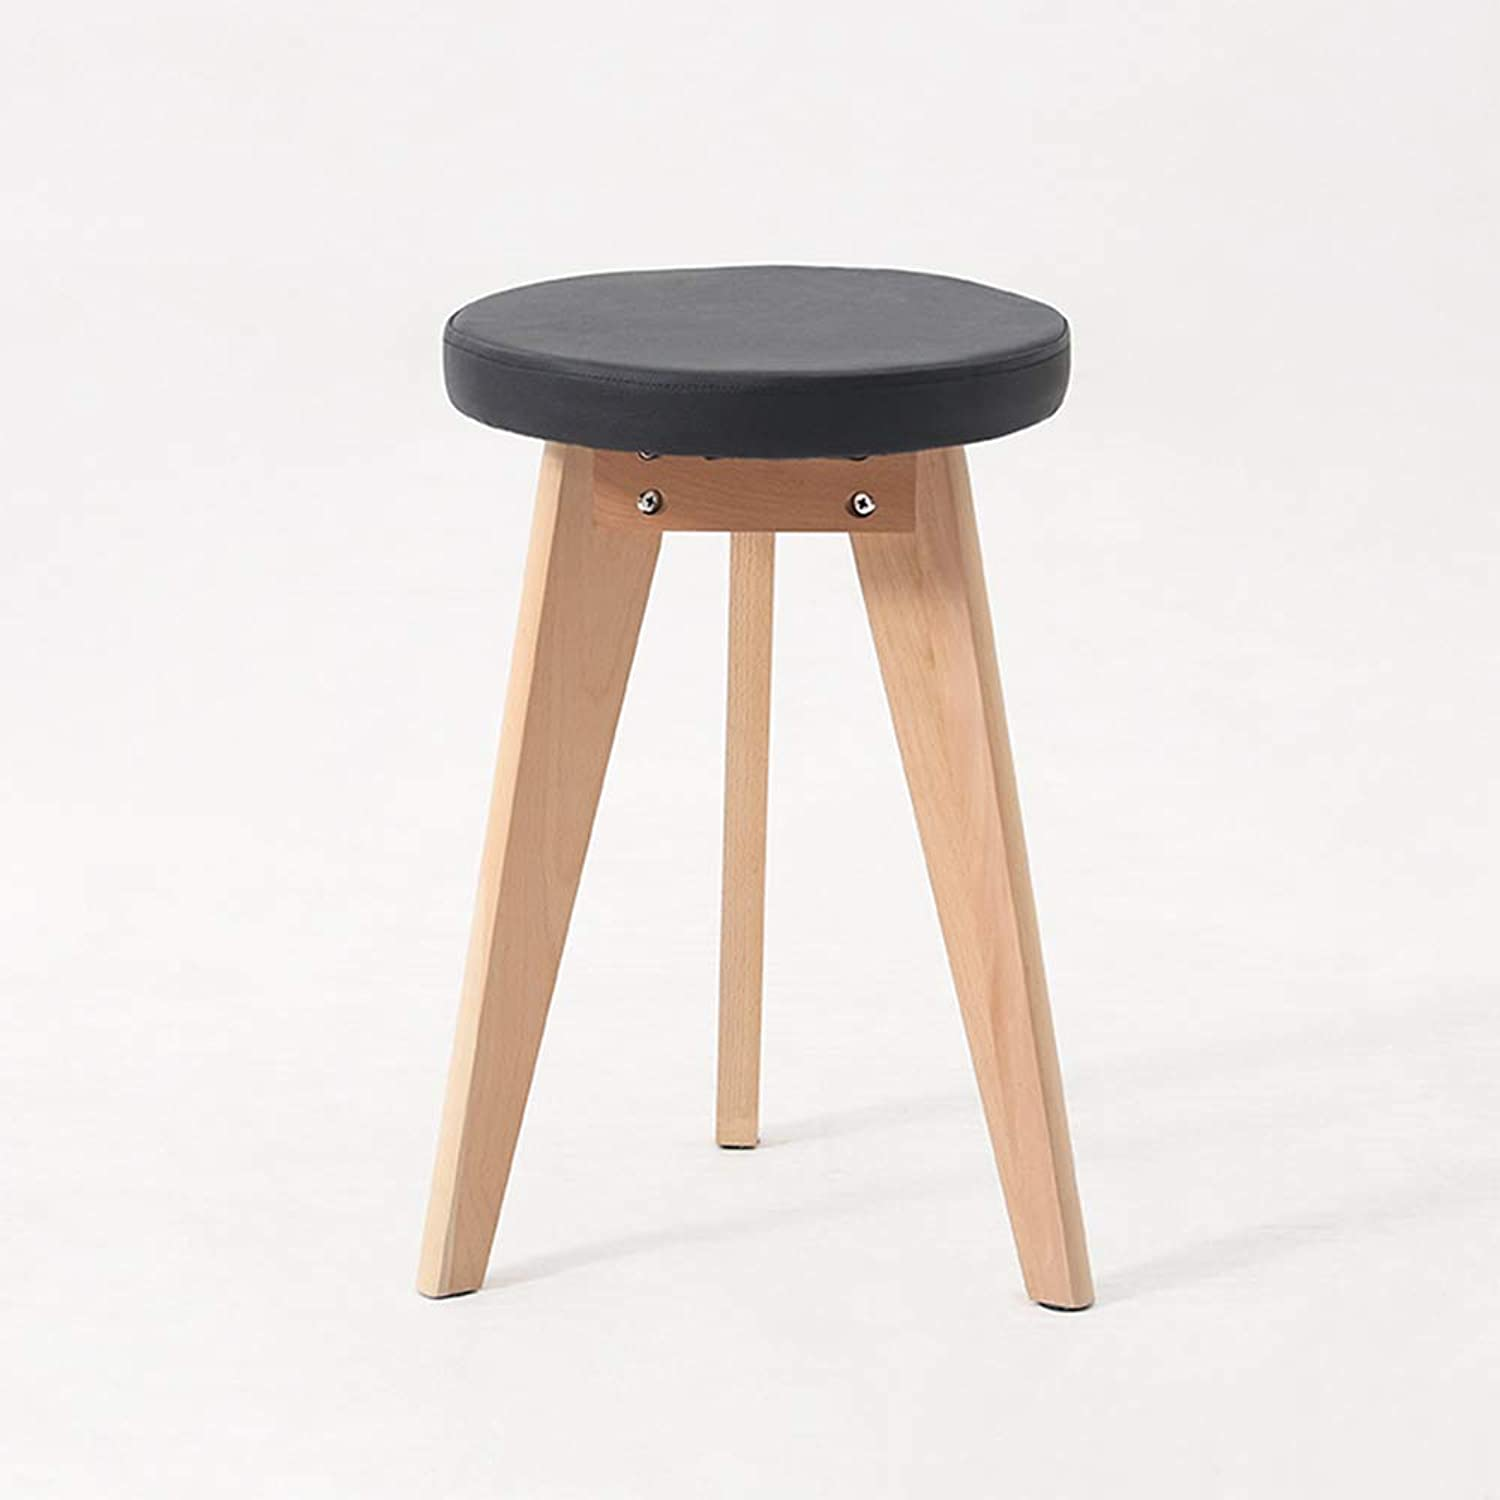 Recliner, Solid Wood Stool Living Room Bedroom Sofa Stool Creative Fabric Makeup Stool shoes Bench Stool-E